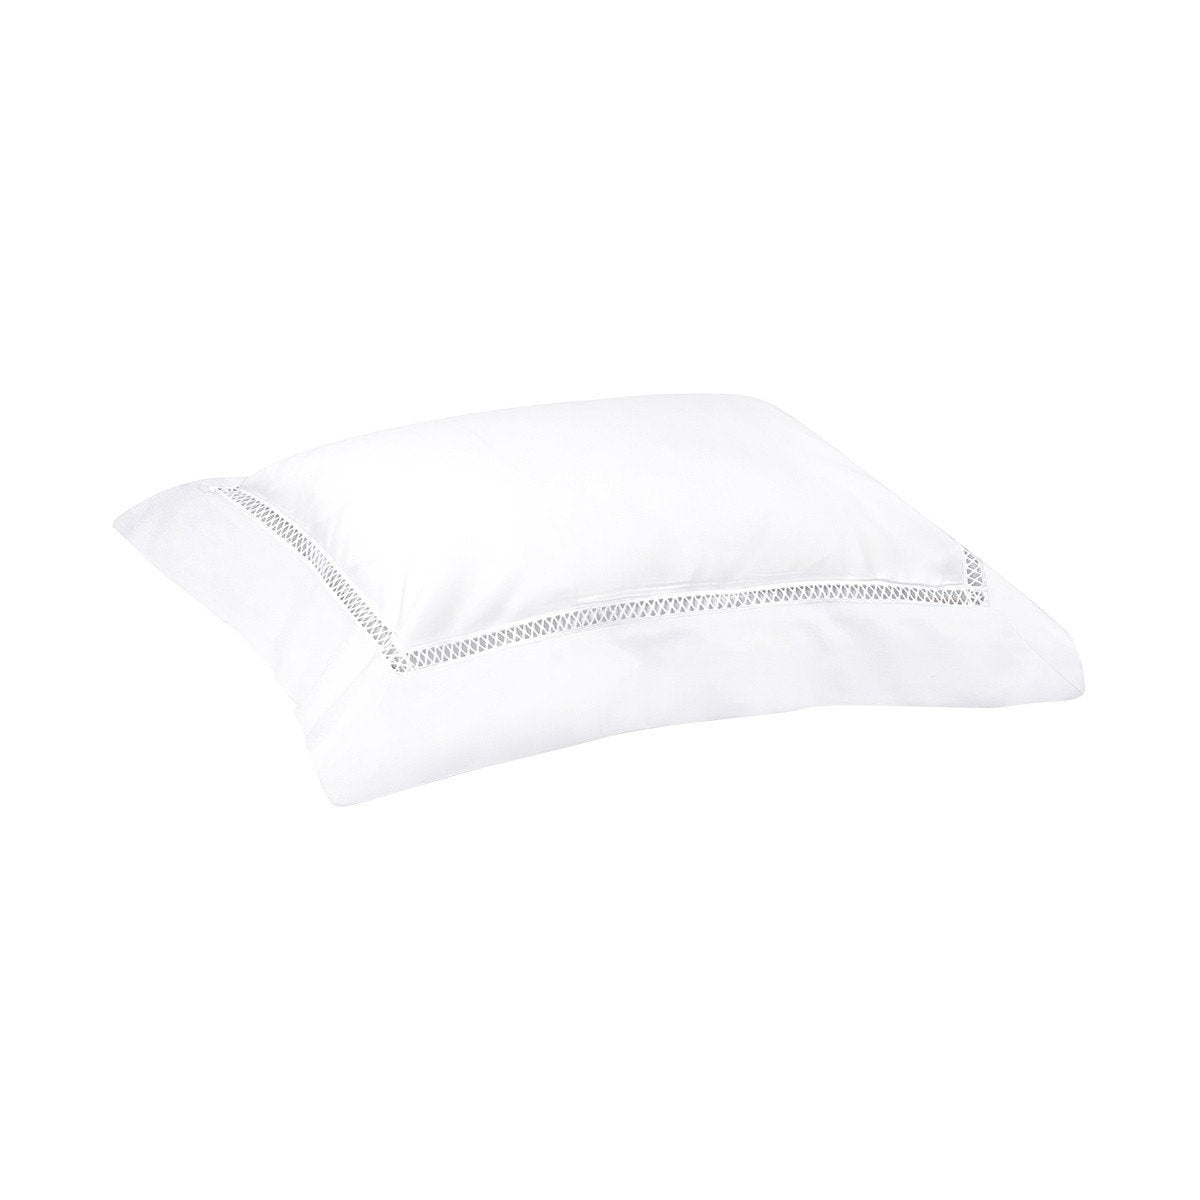 Yves Delorme Walton Bedding Collection - Blanc